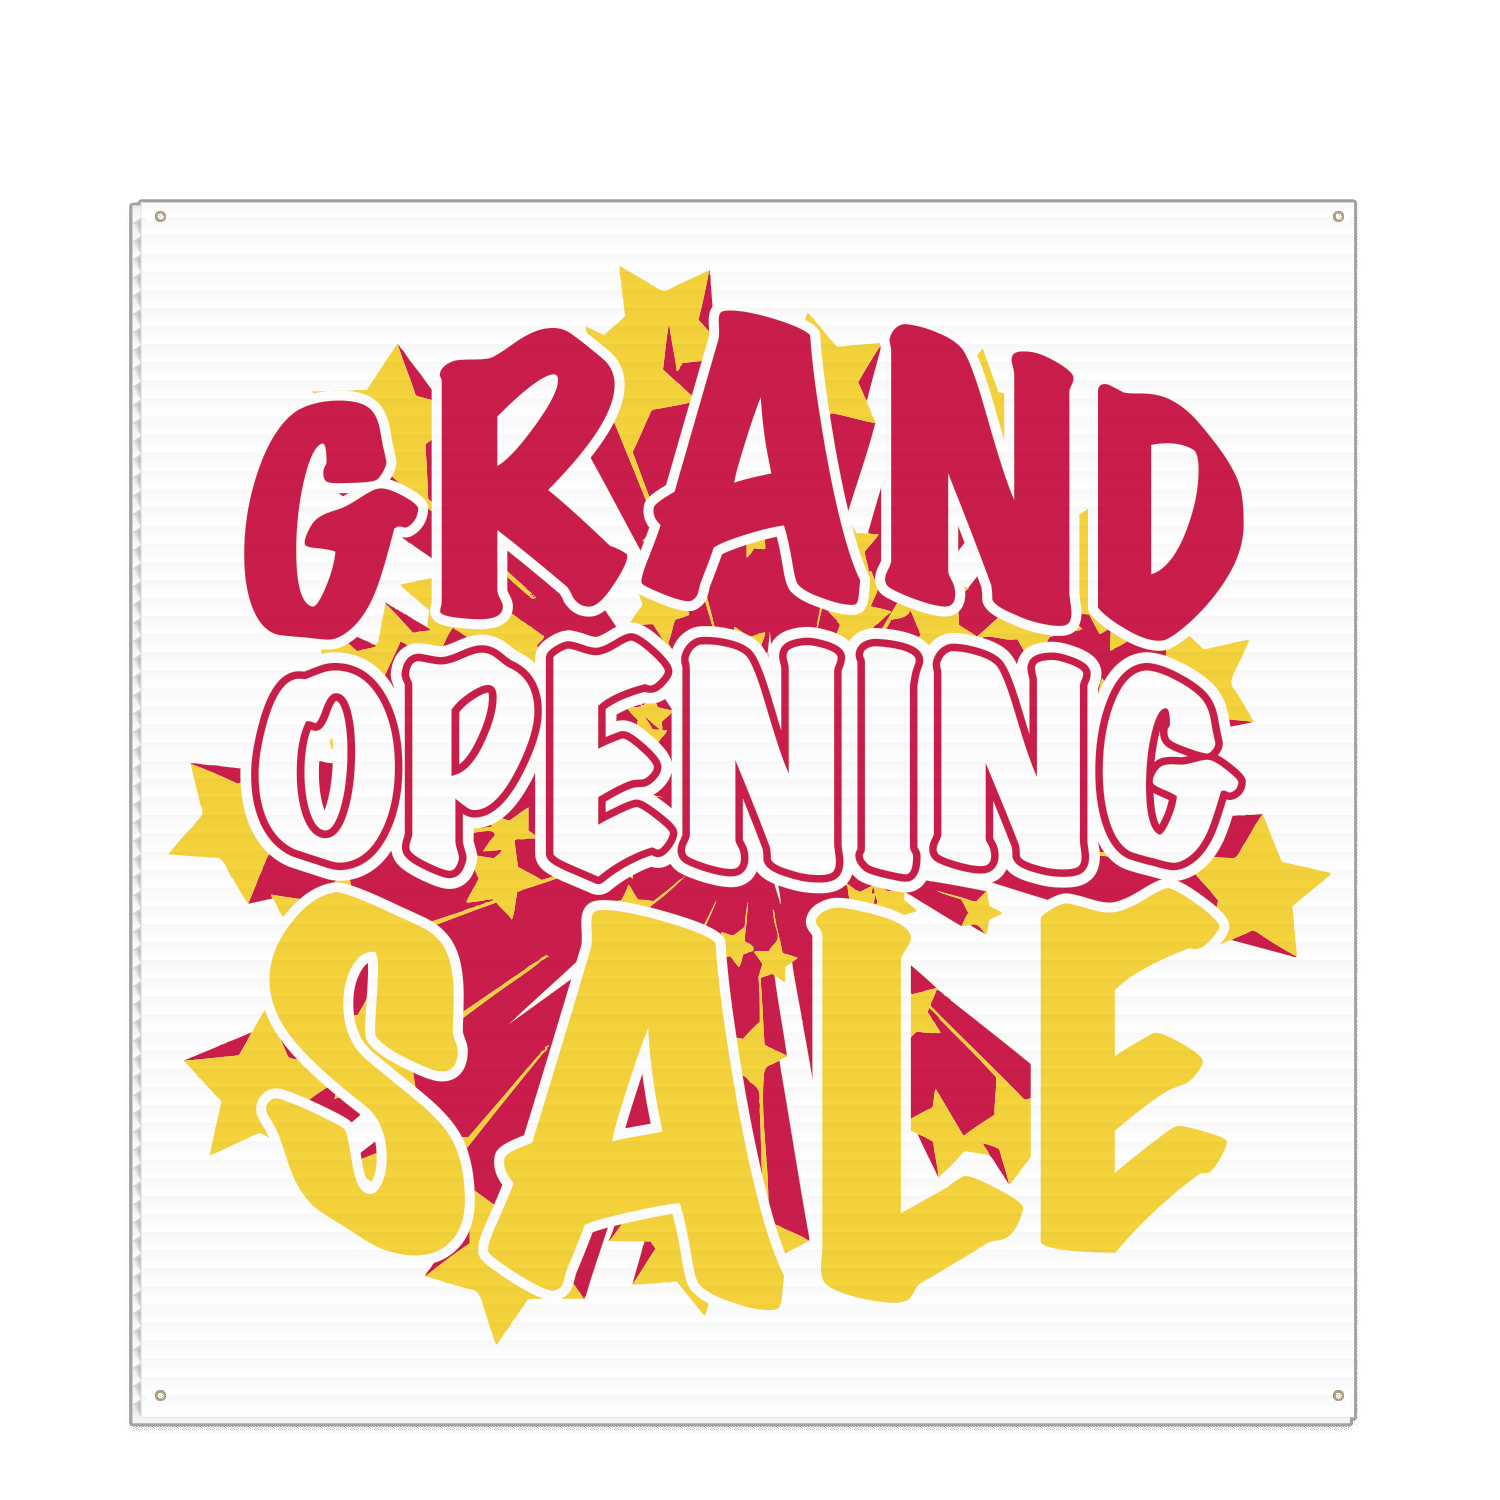 https://www.sswprinting.com/images/products_gallery_images/16631_Grand-Opening_hi-res.png